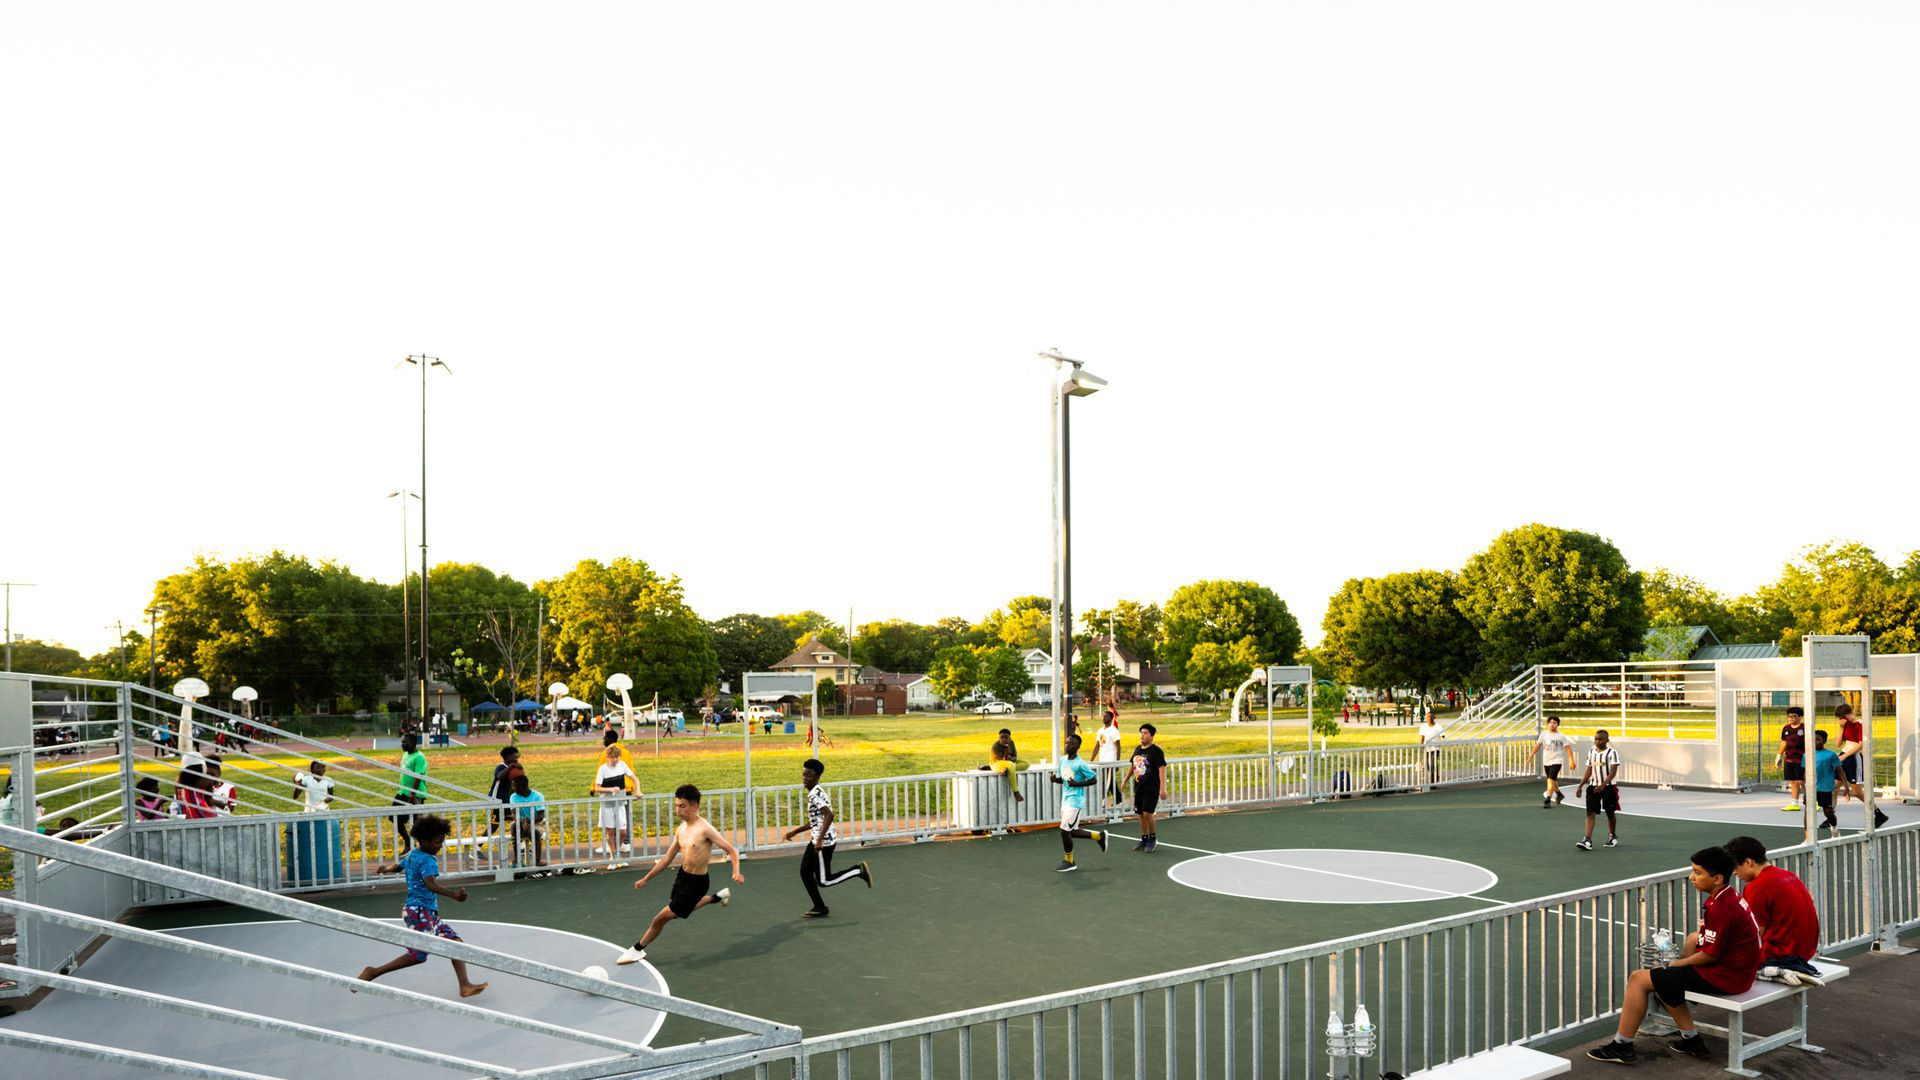 The new futsal mini-pitch at a park in Des Moines.